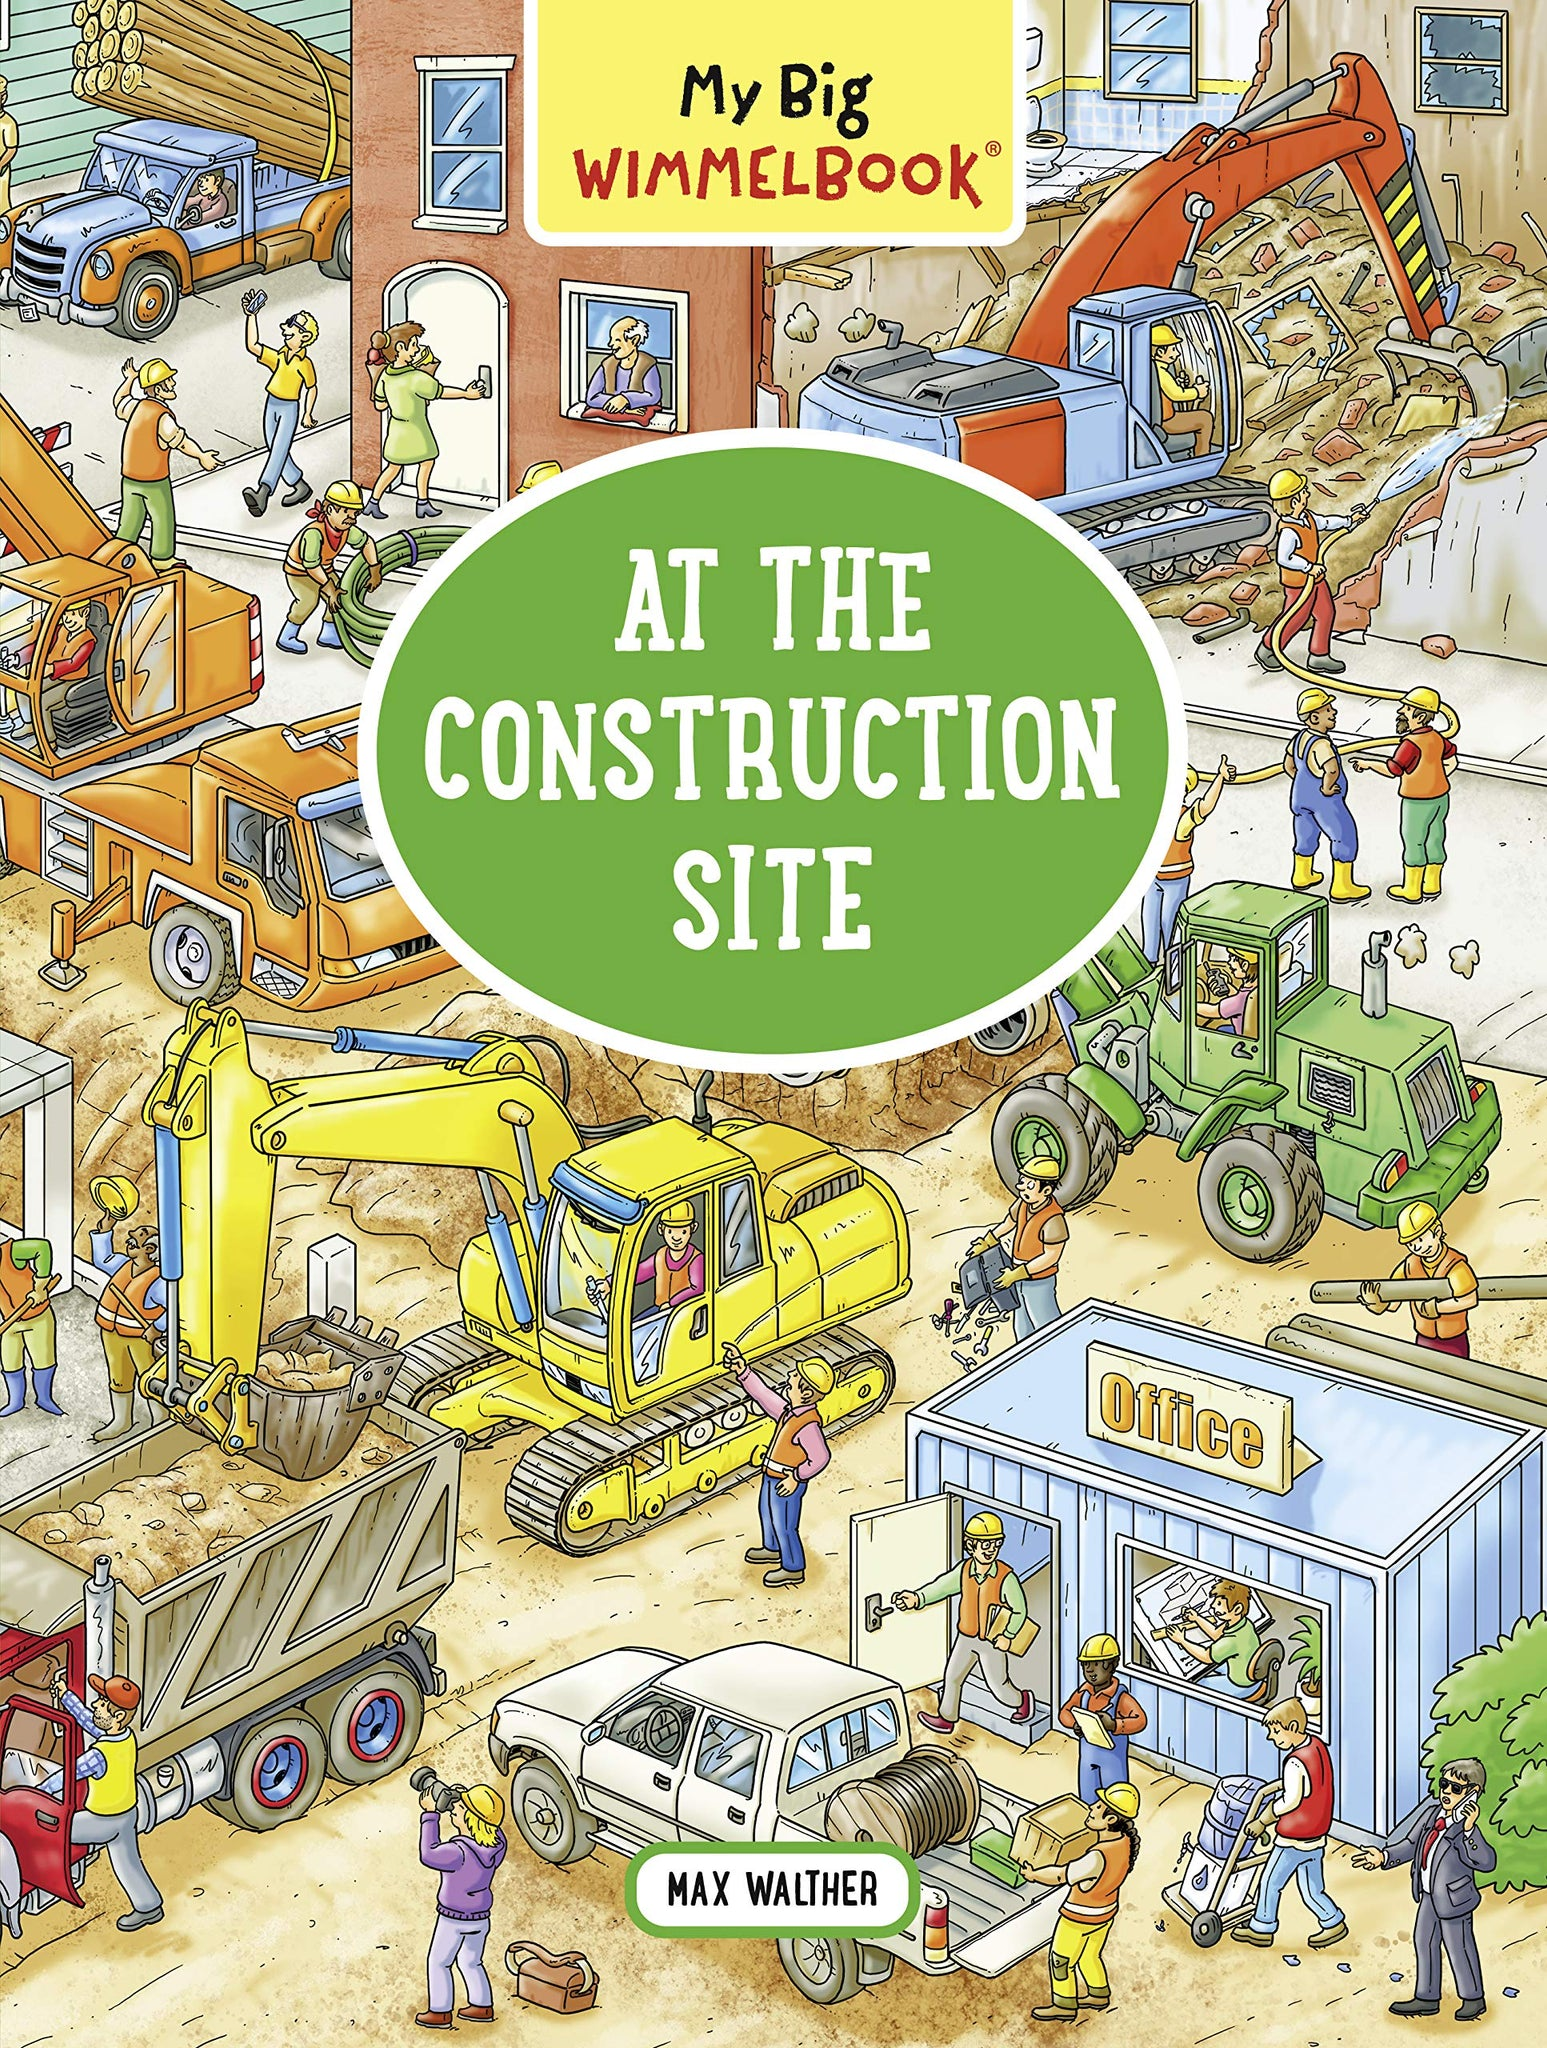 My Big Wimmelbook―At the Construction Site